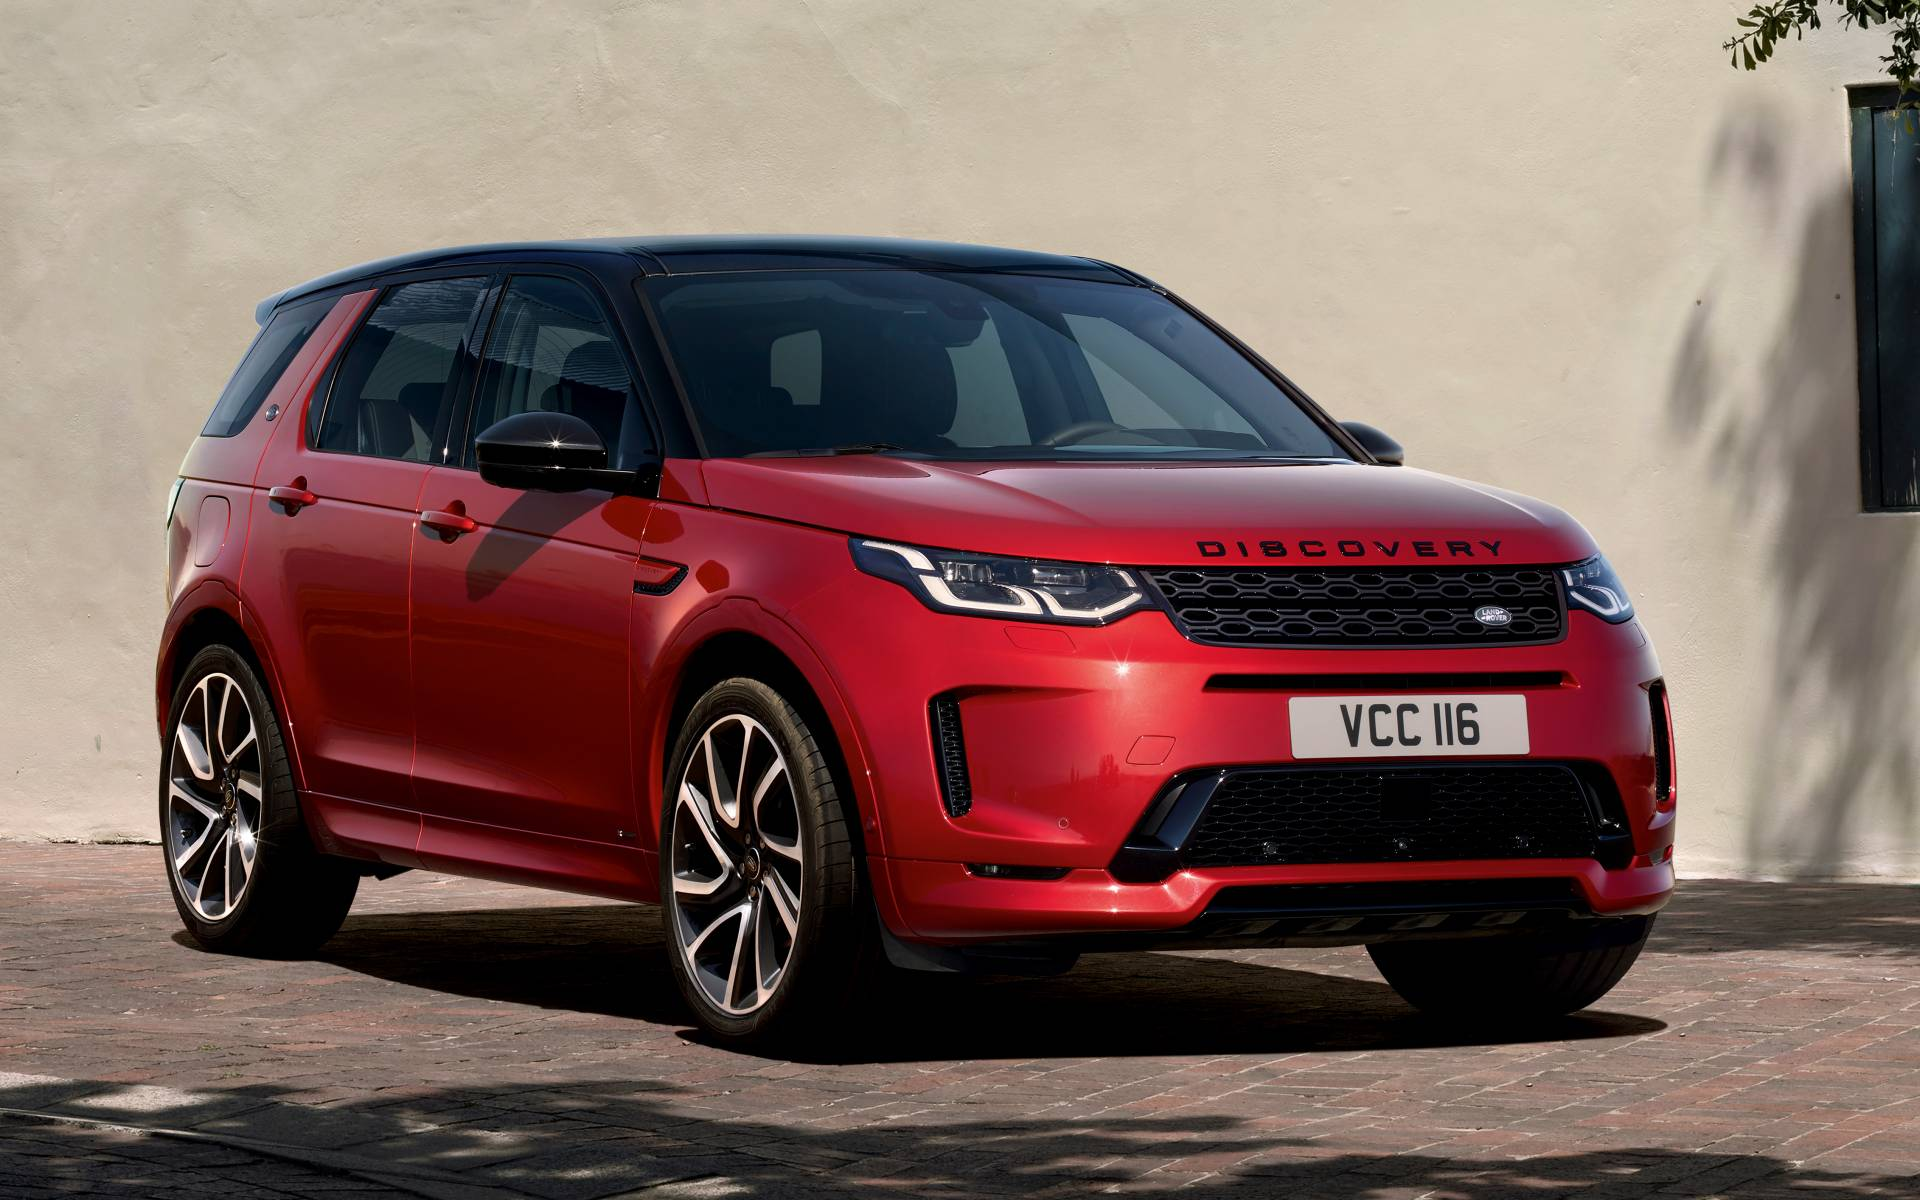 2020 Land Rover Discovery Sport News Reviews Picture Galleries And Videos The Car Guide